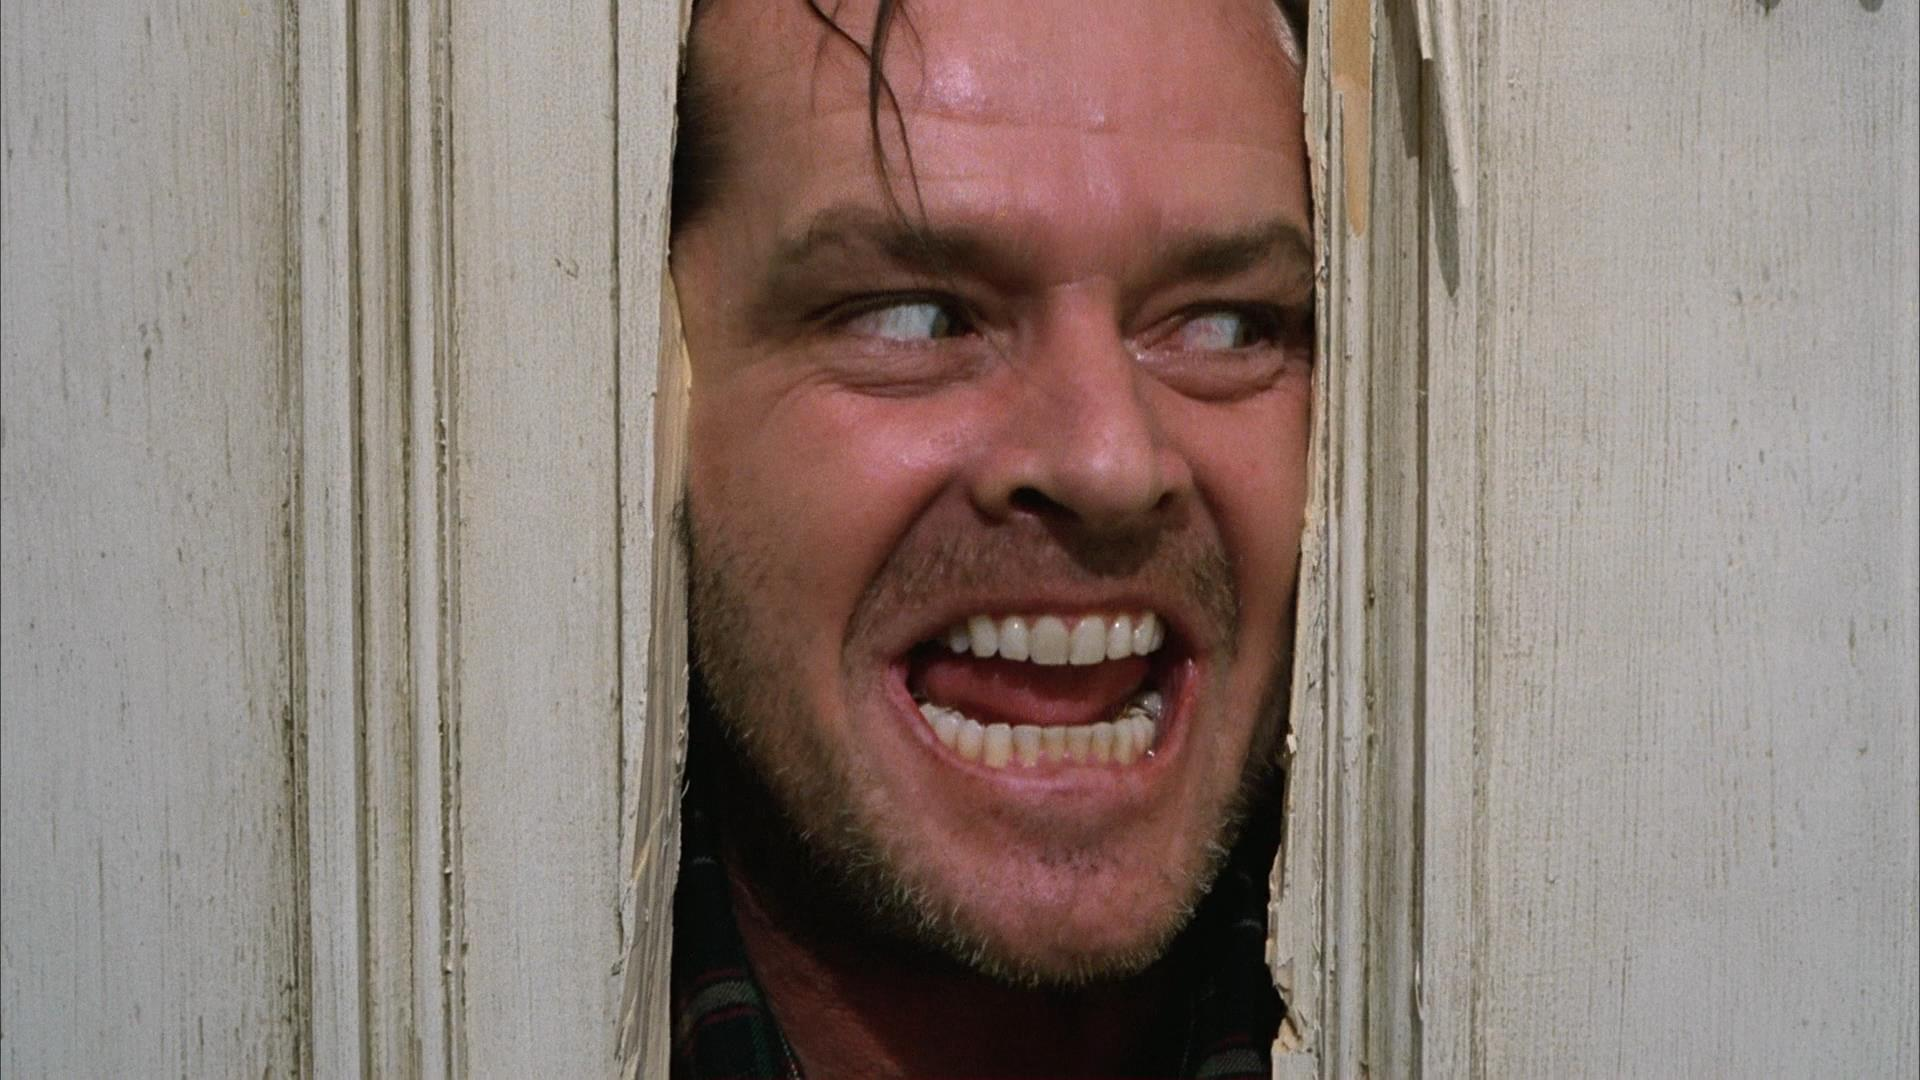 Still from the movie the Shining